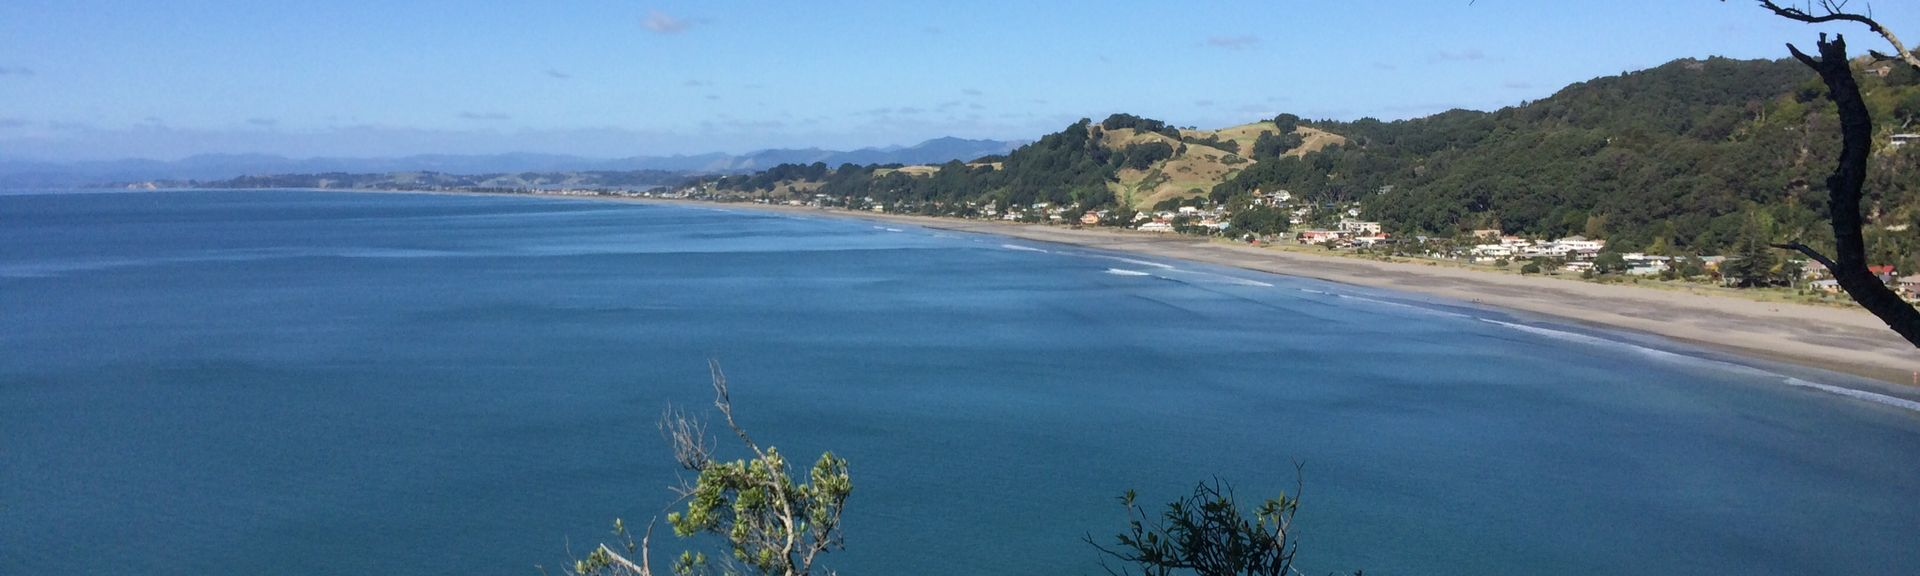 Waiotahi, Opotiki, Bay of Plenty Region, New Zealand